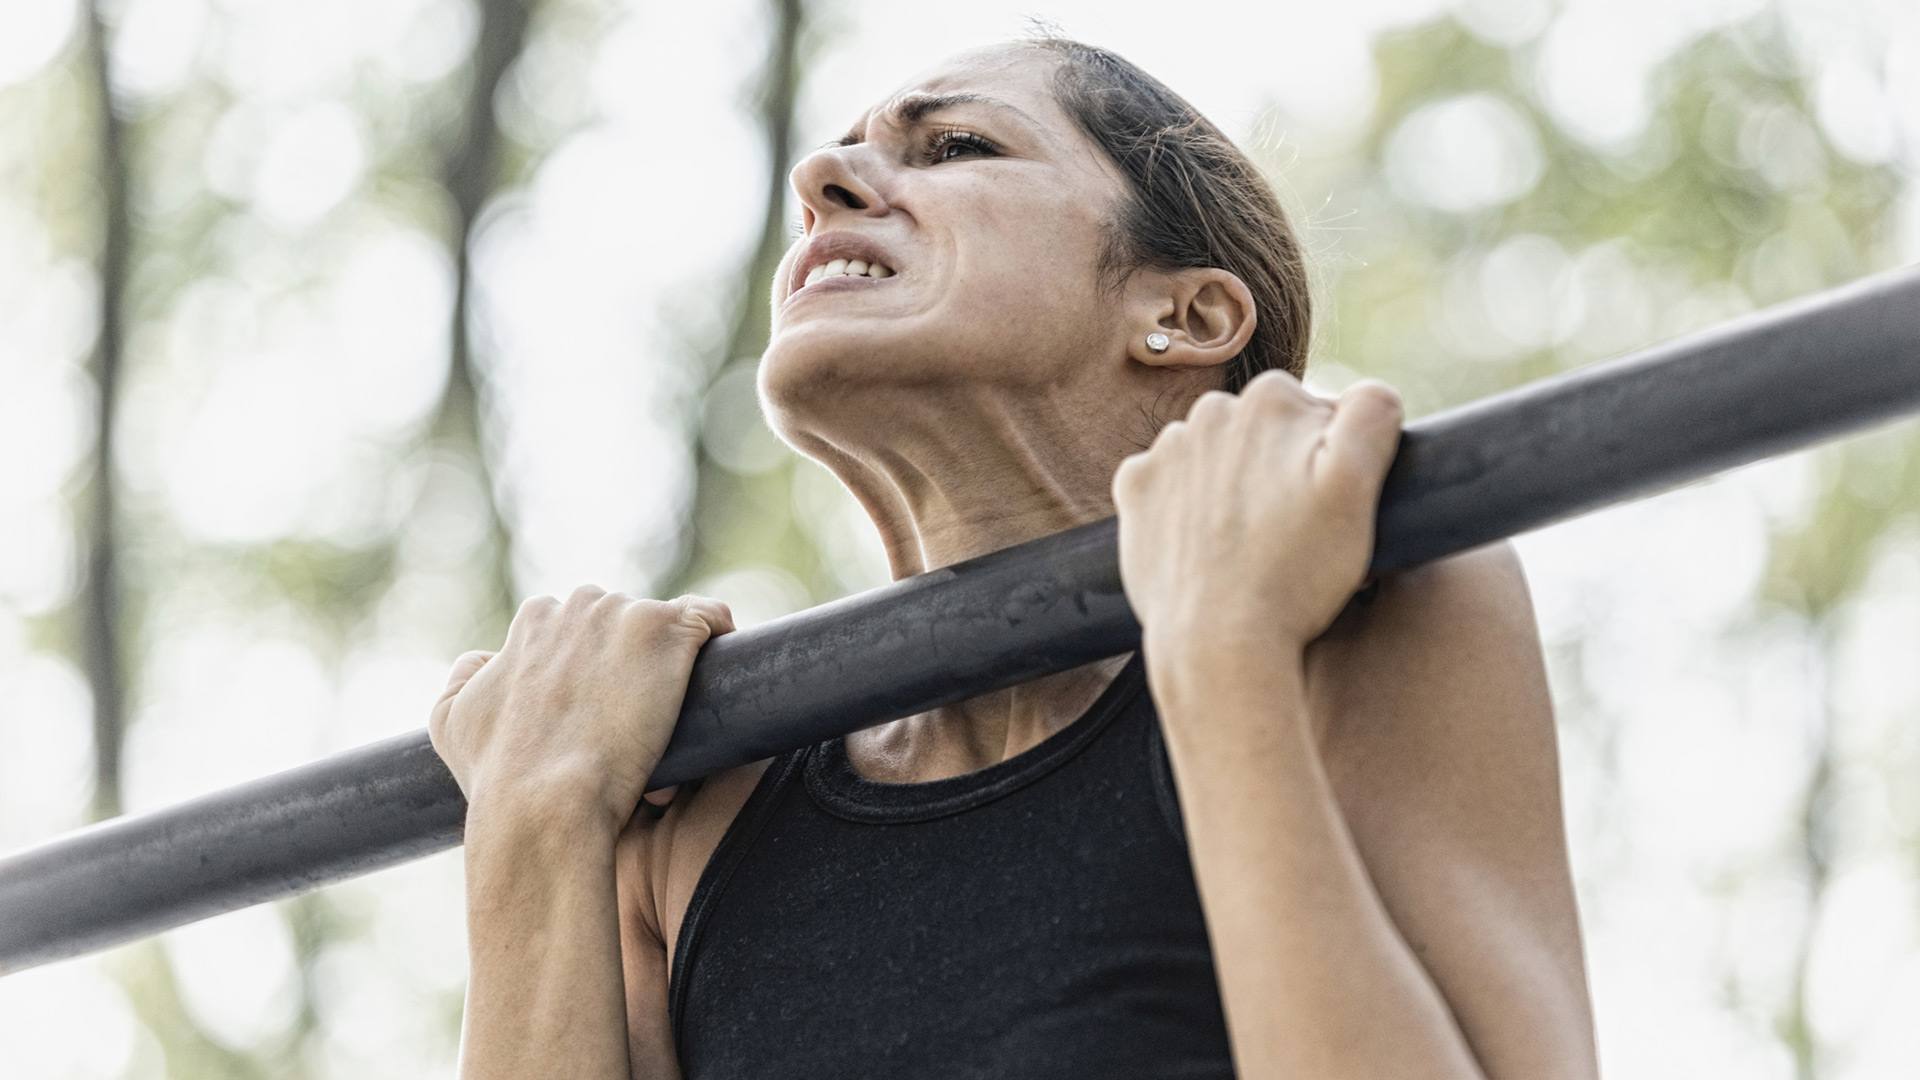 Woman doing Pull-ups | Sheknows.com